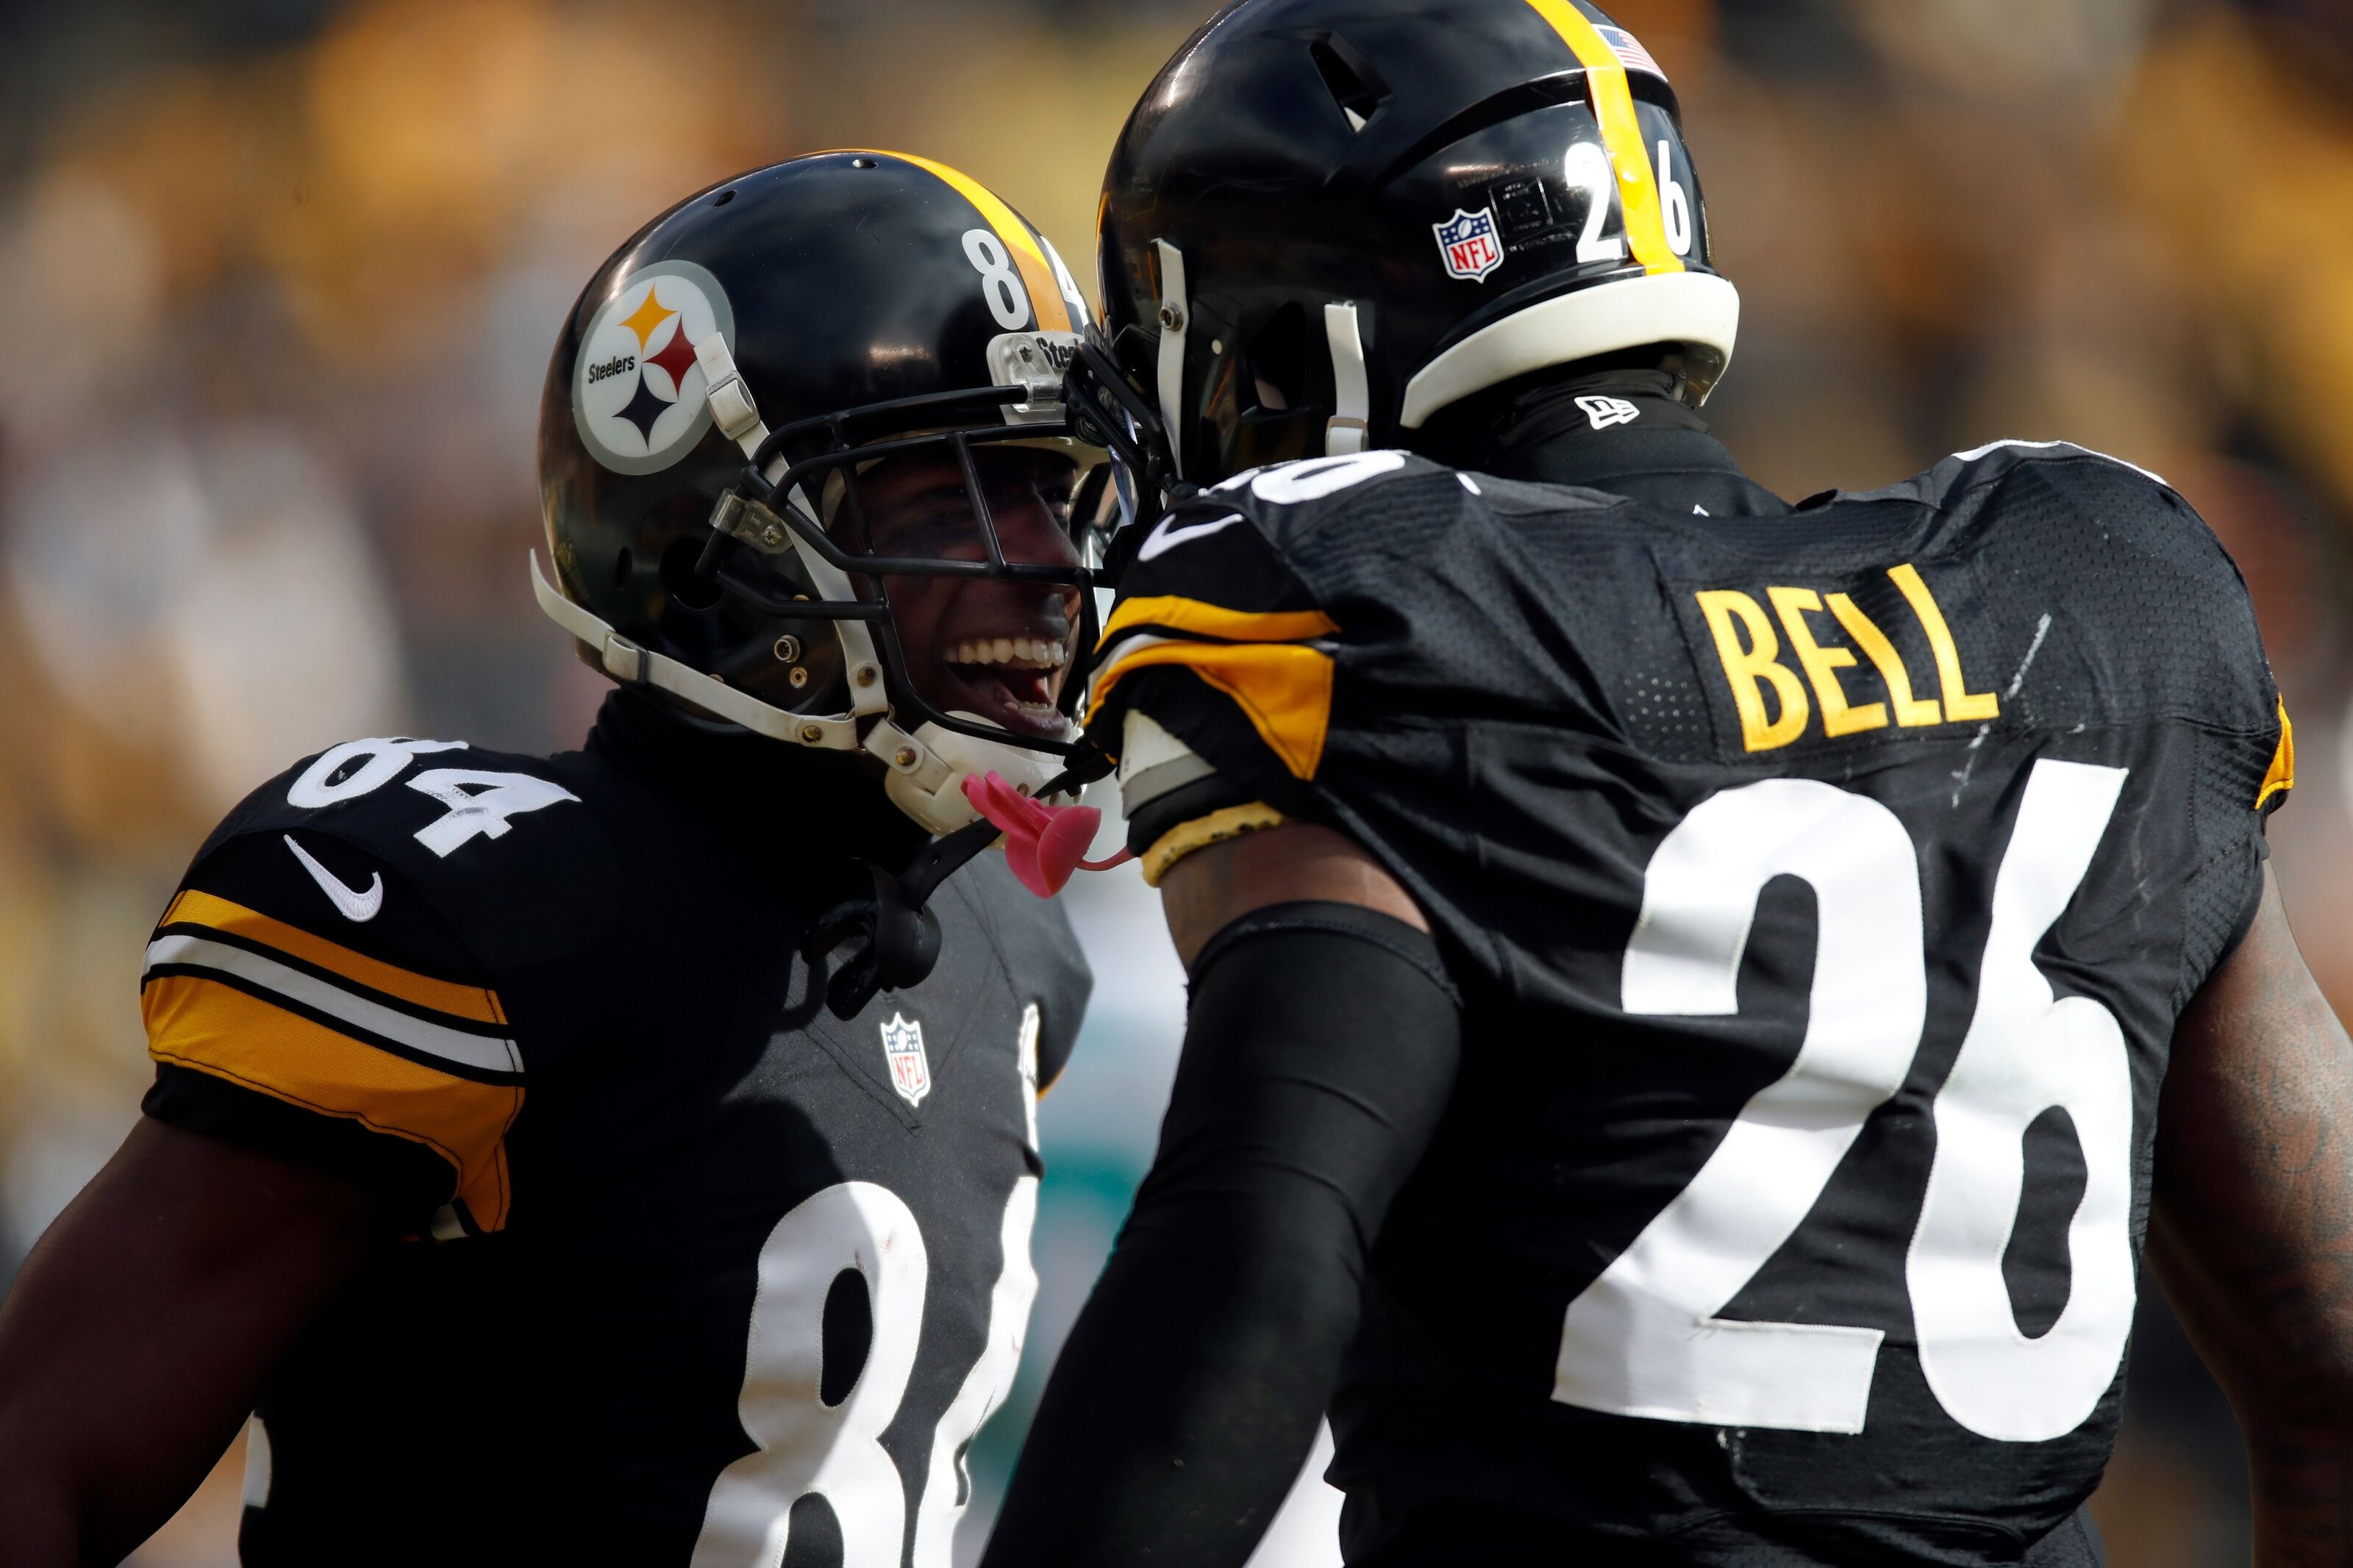 The Pittsburgh Steelers sit in uncharted waters with Antonio Brown, Le'Veon Bell